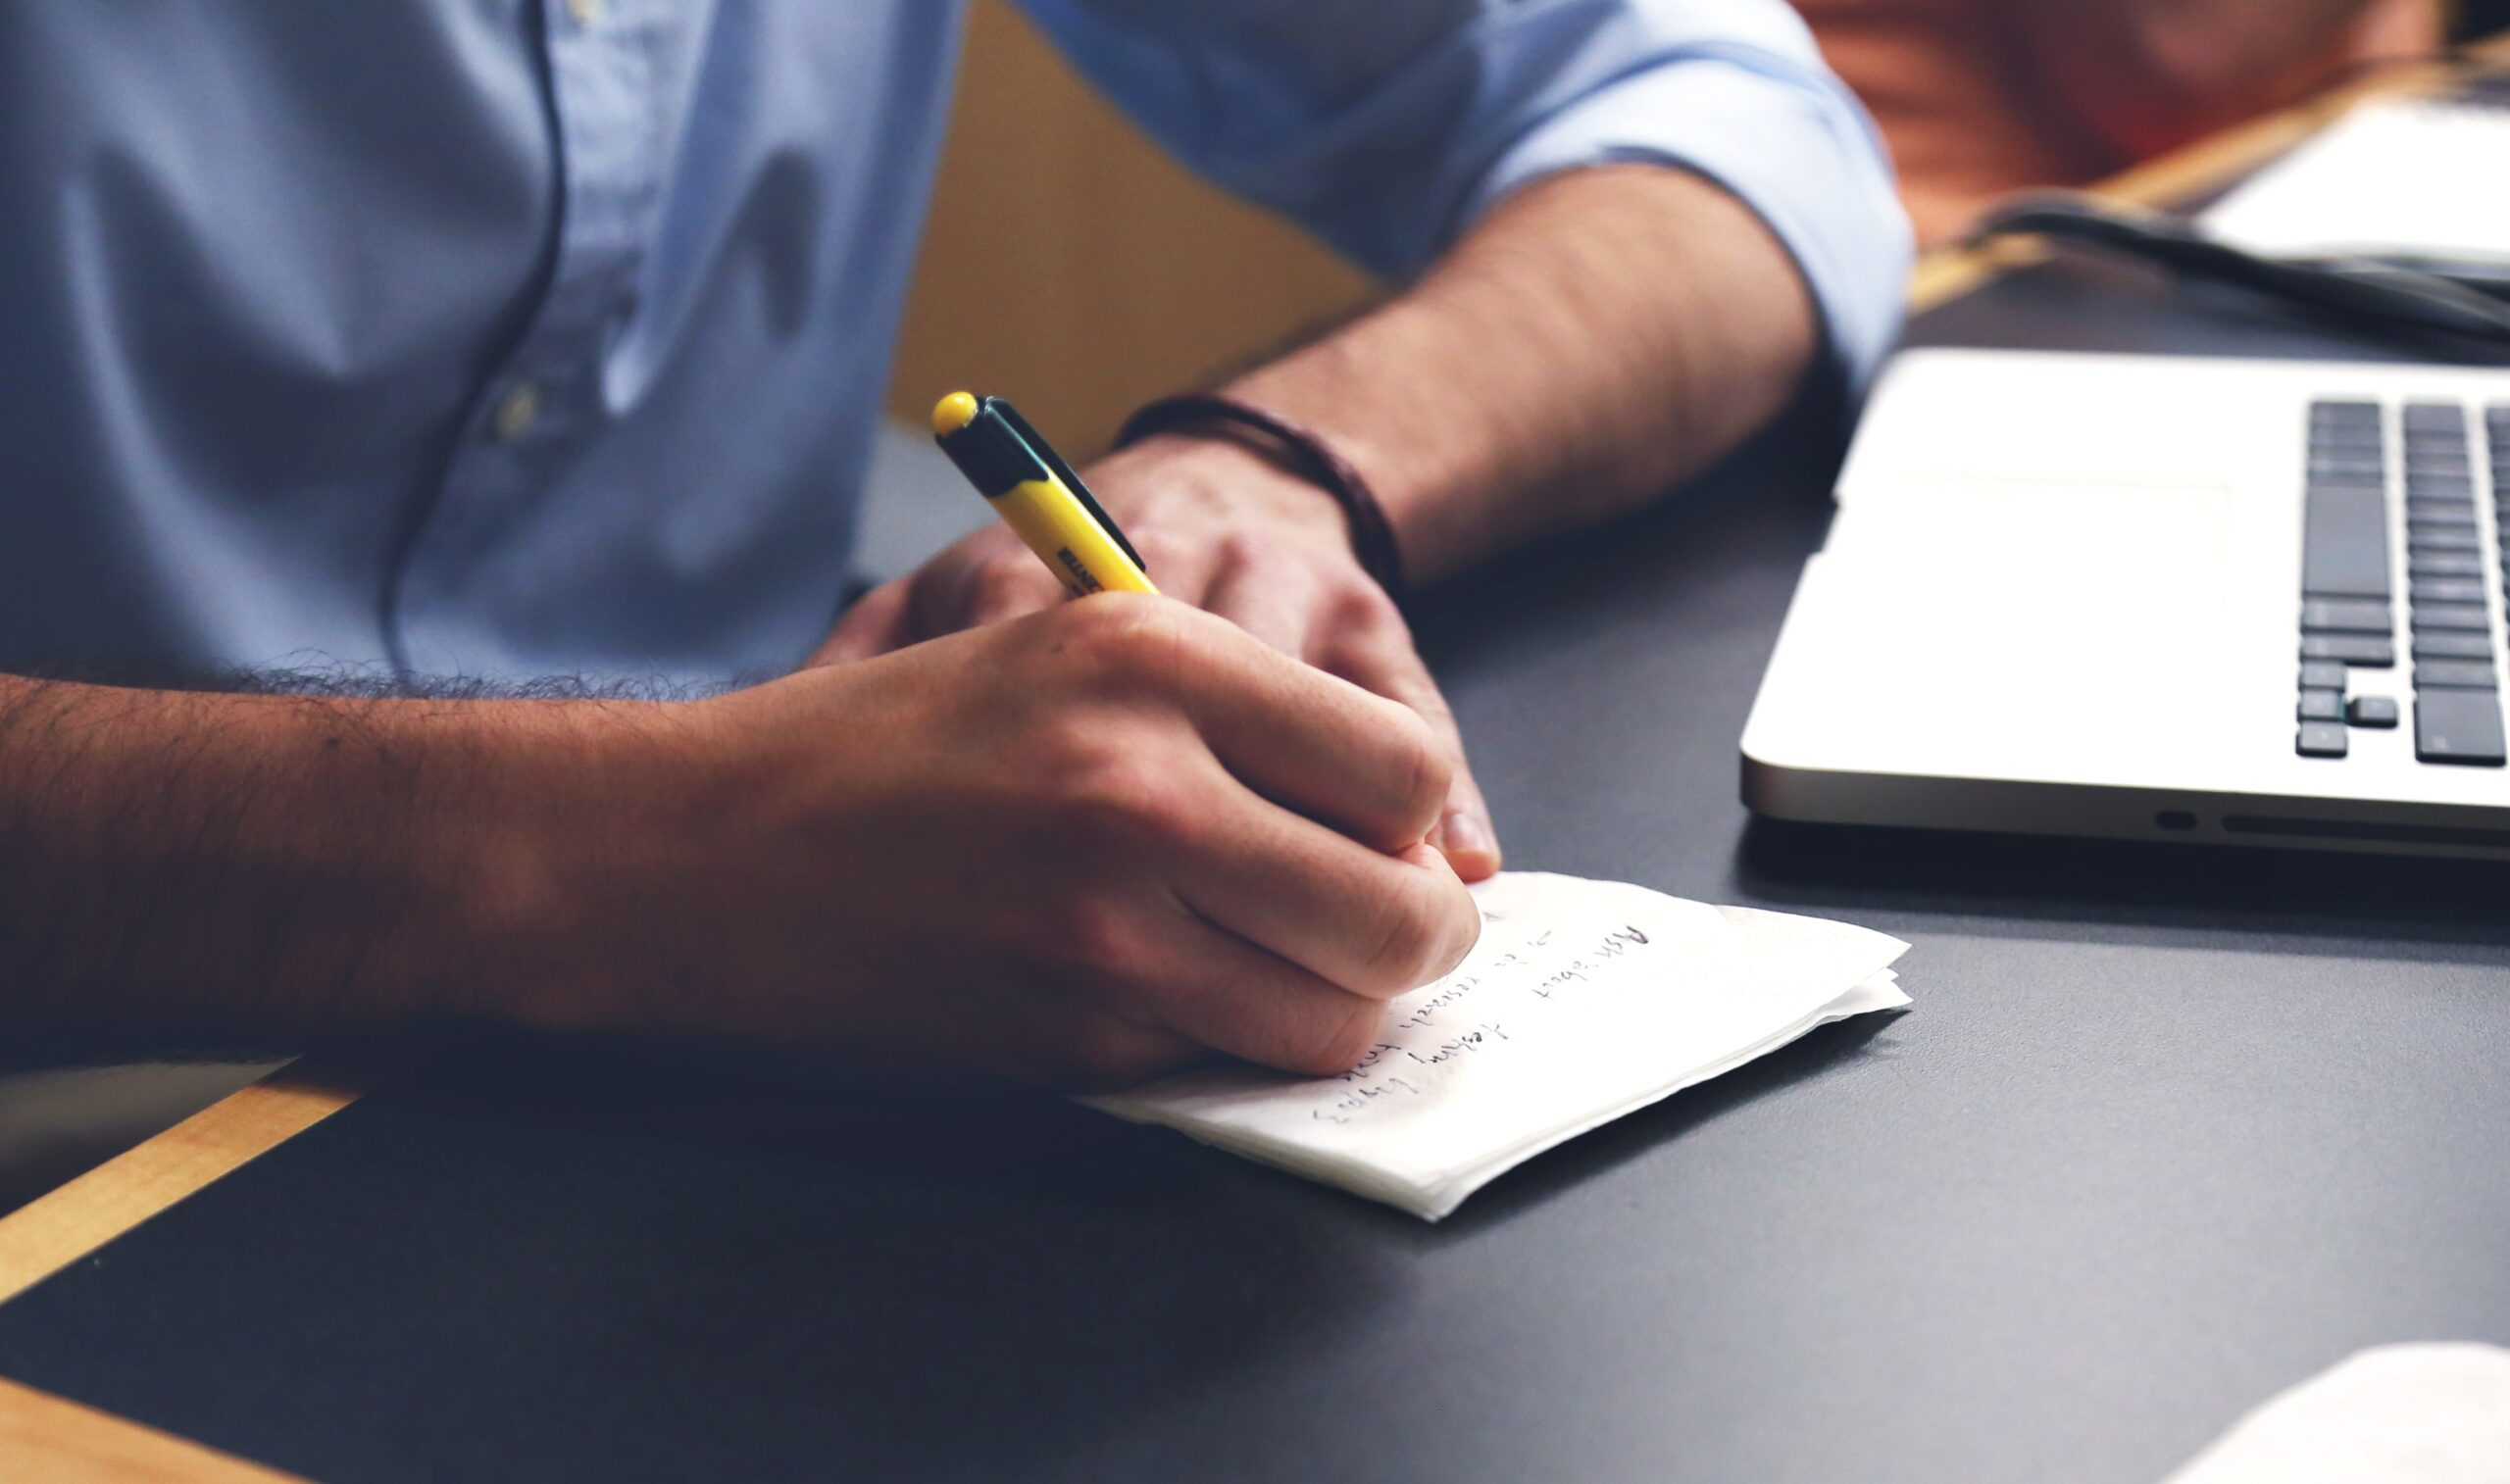 A Simple End of the Year To-Do List for Small Businesses